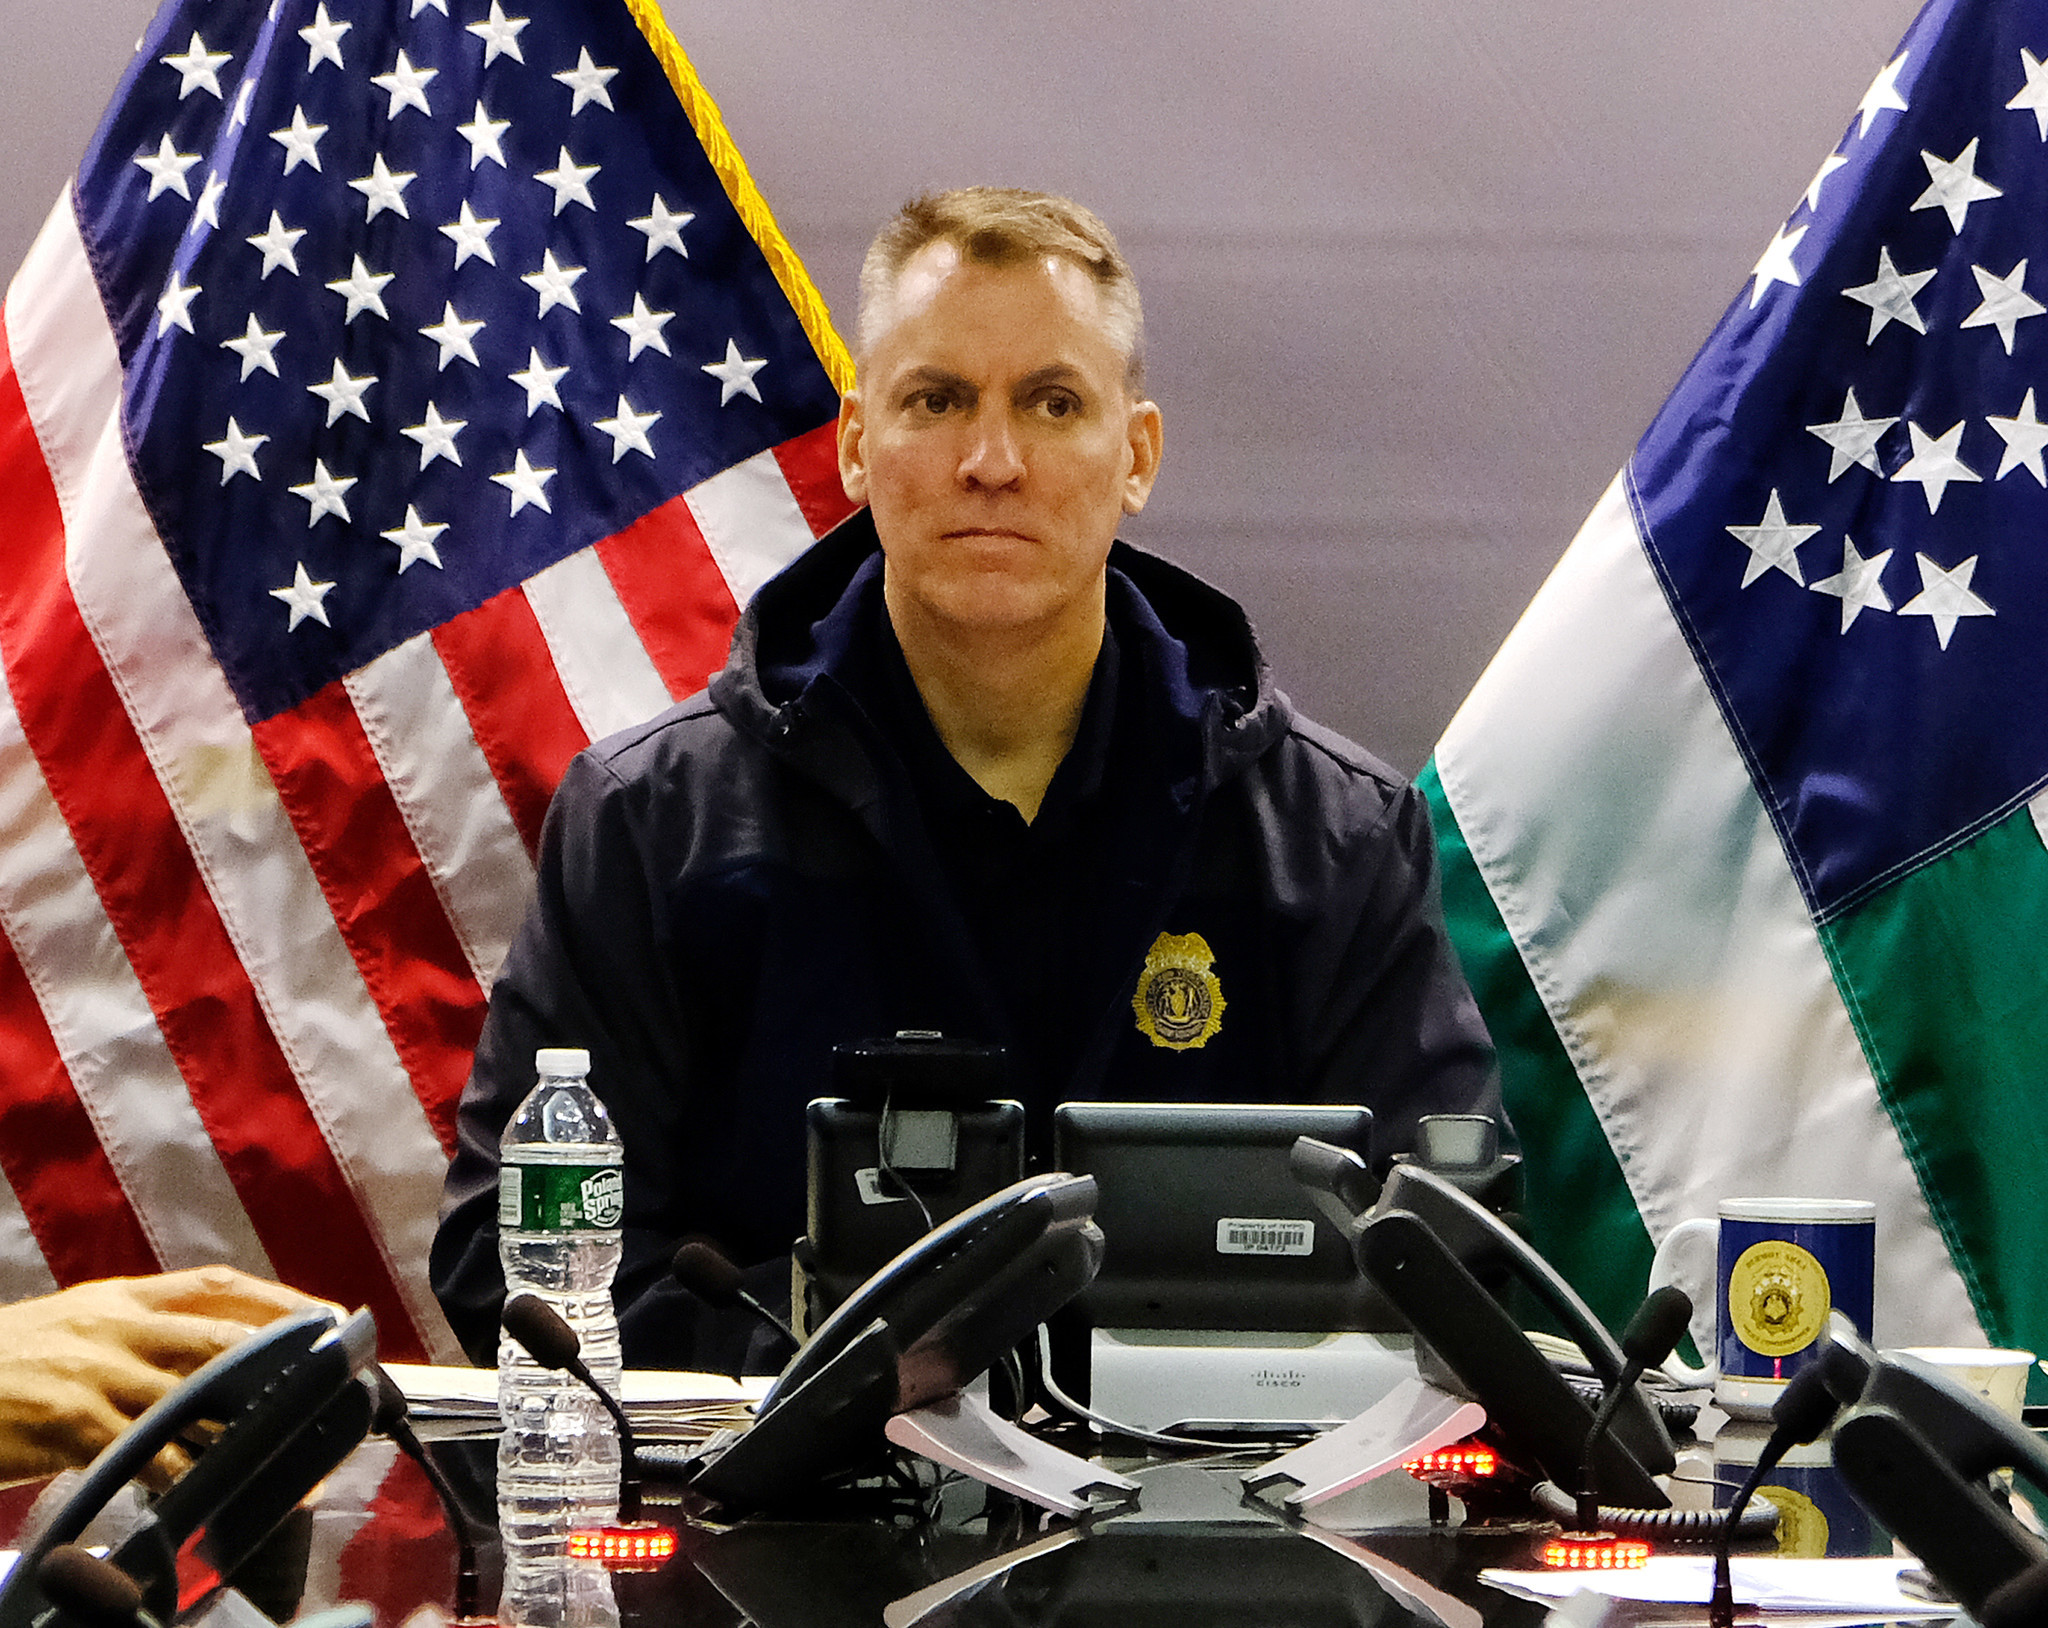 Shea: Thousands of NYPD employees working from home, as 900 expected to test positive for coronavirus